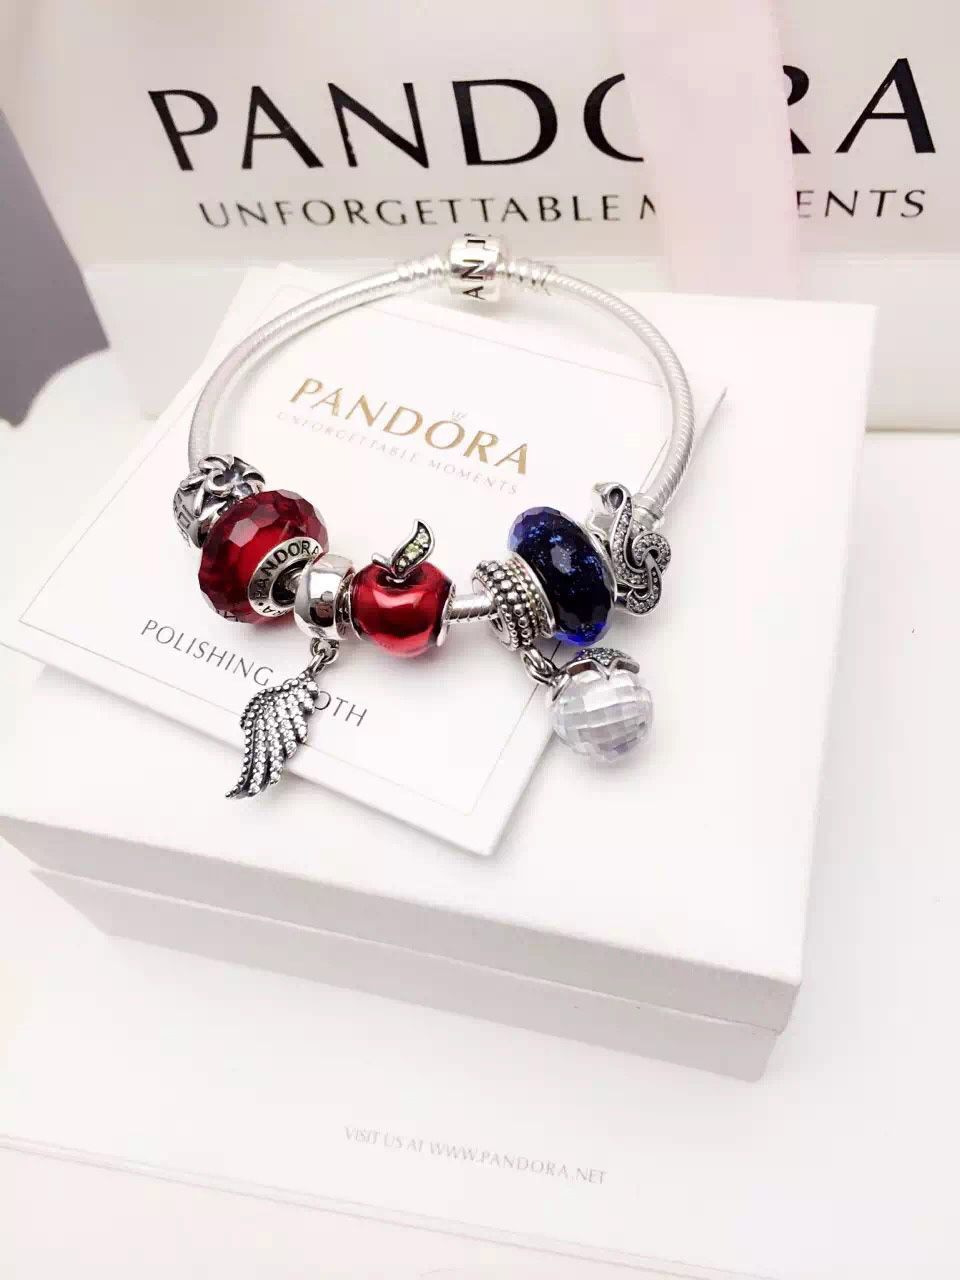 e9da612f6 $199 Pandora Charm Bracelet Red Blue. Hot Sale!!! SKU: CB02087 - PANDORA  Bracelet Ideas